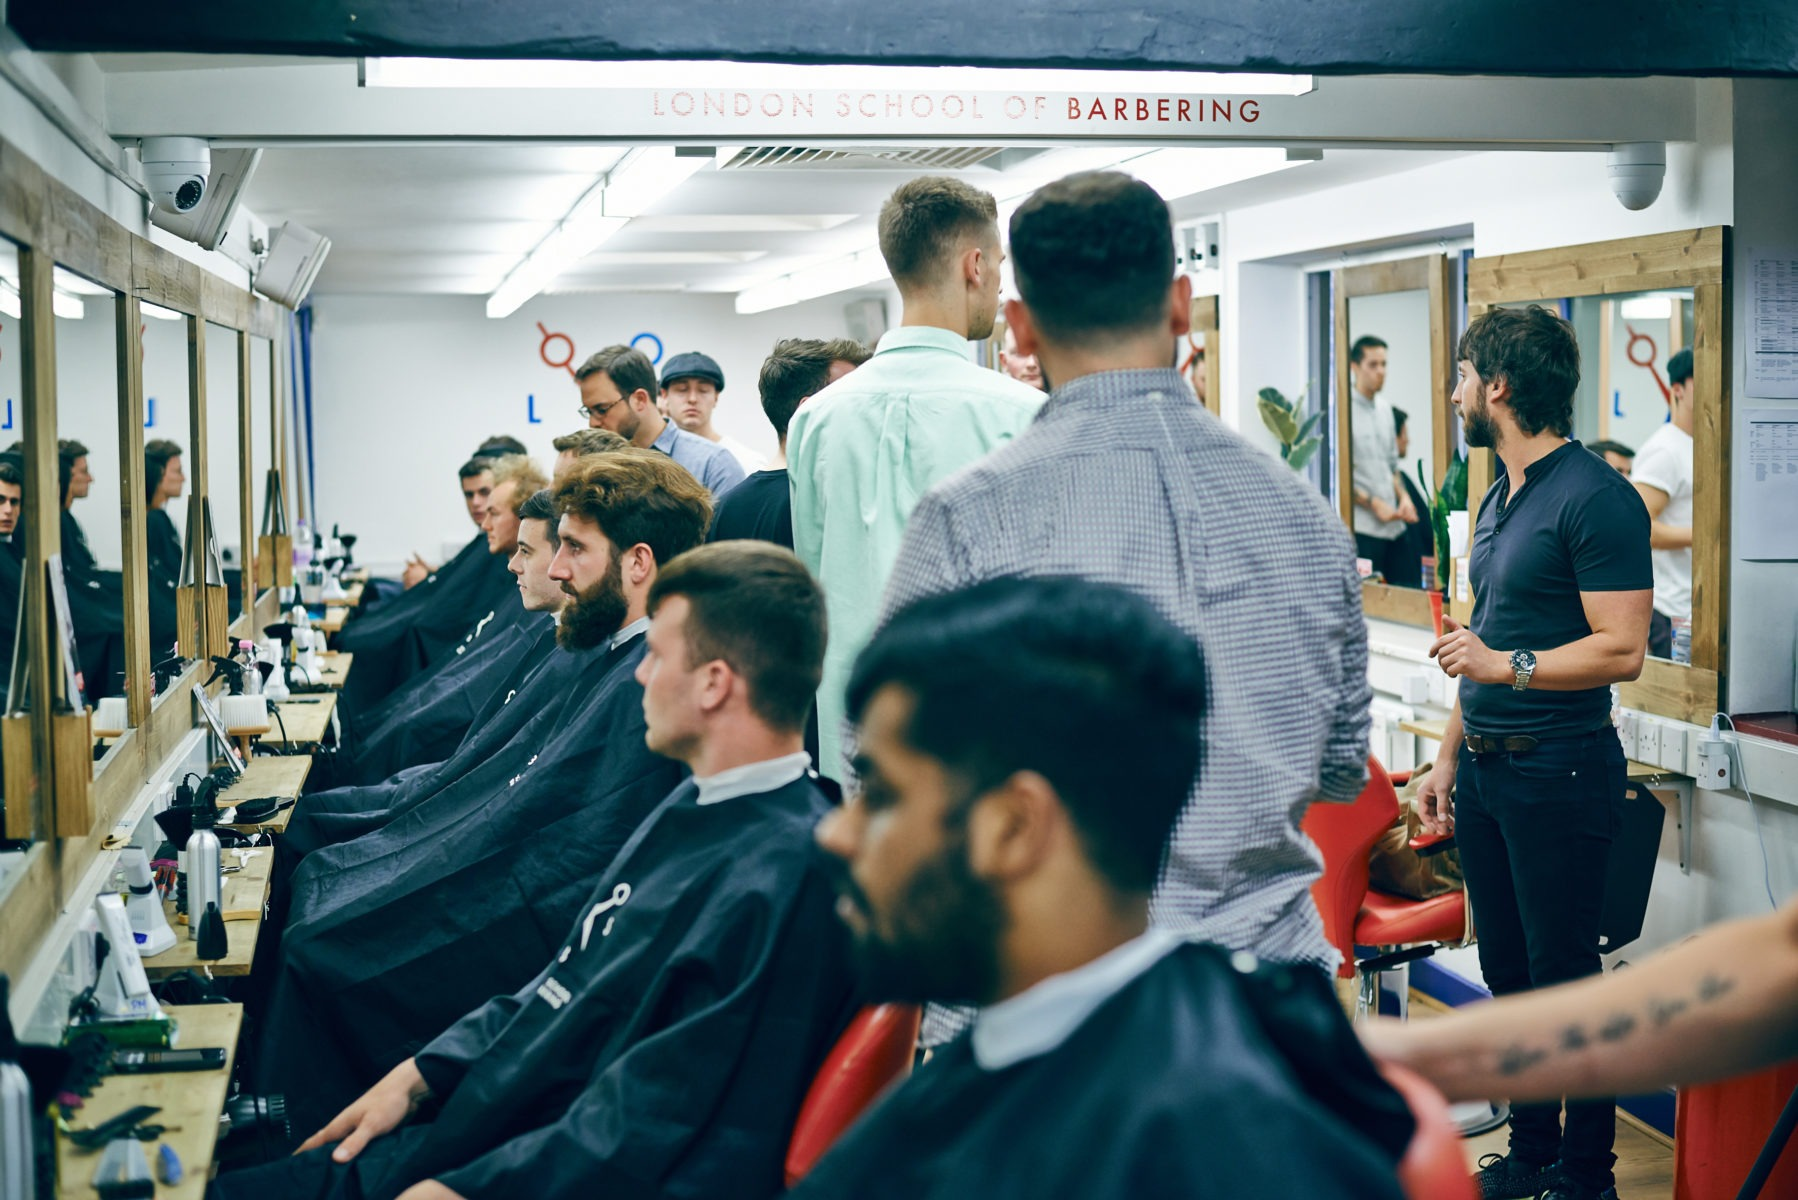 School Photos - The London School of Barbering